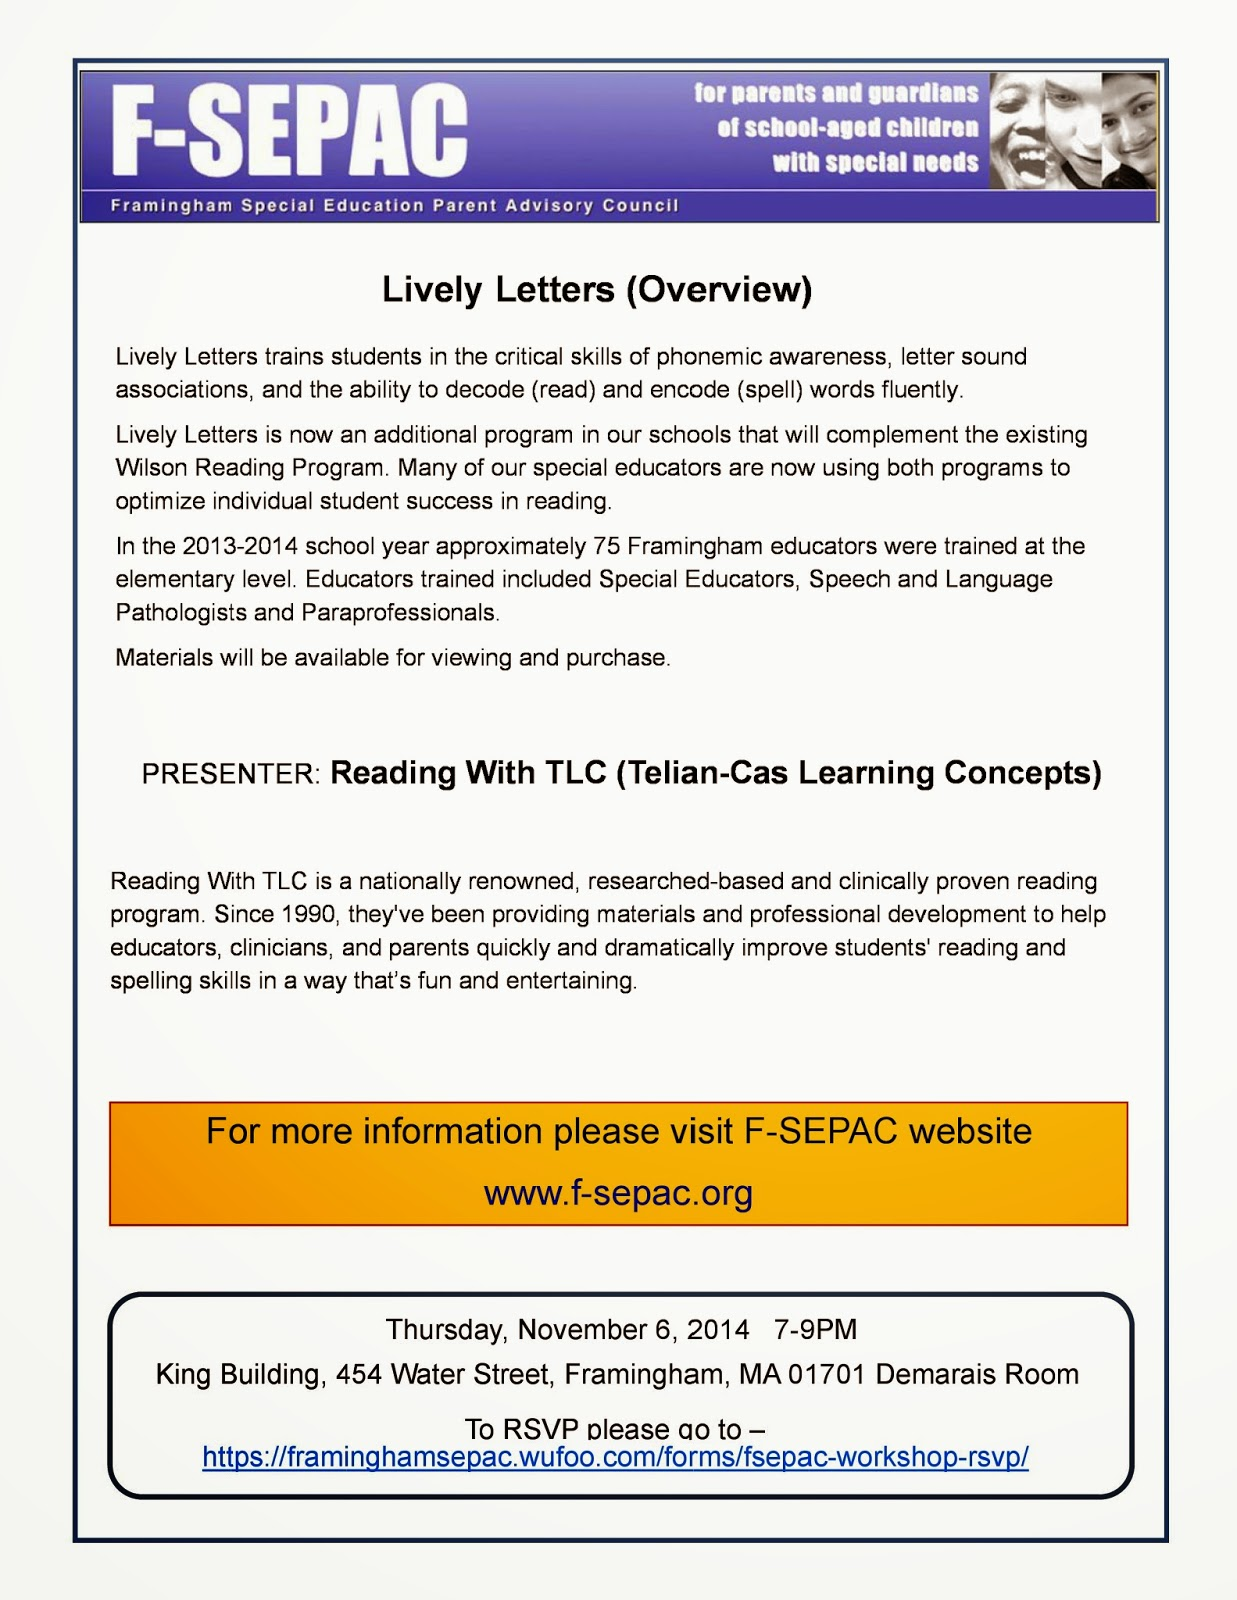 Dyslexia Inattention And Anxiety Mabida >> Nesca News Notes Lively Letters New Reading Program